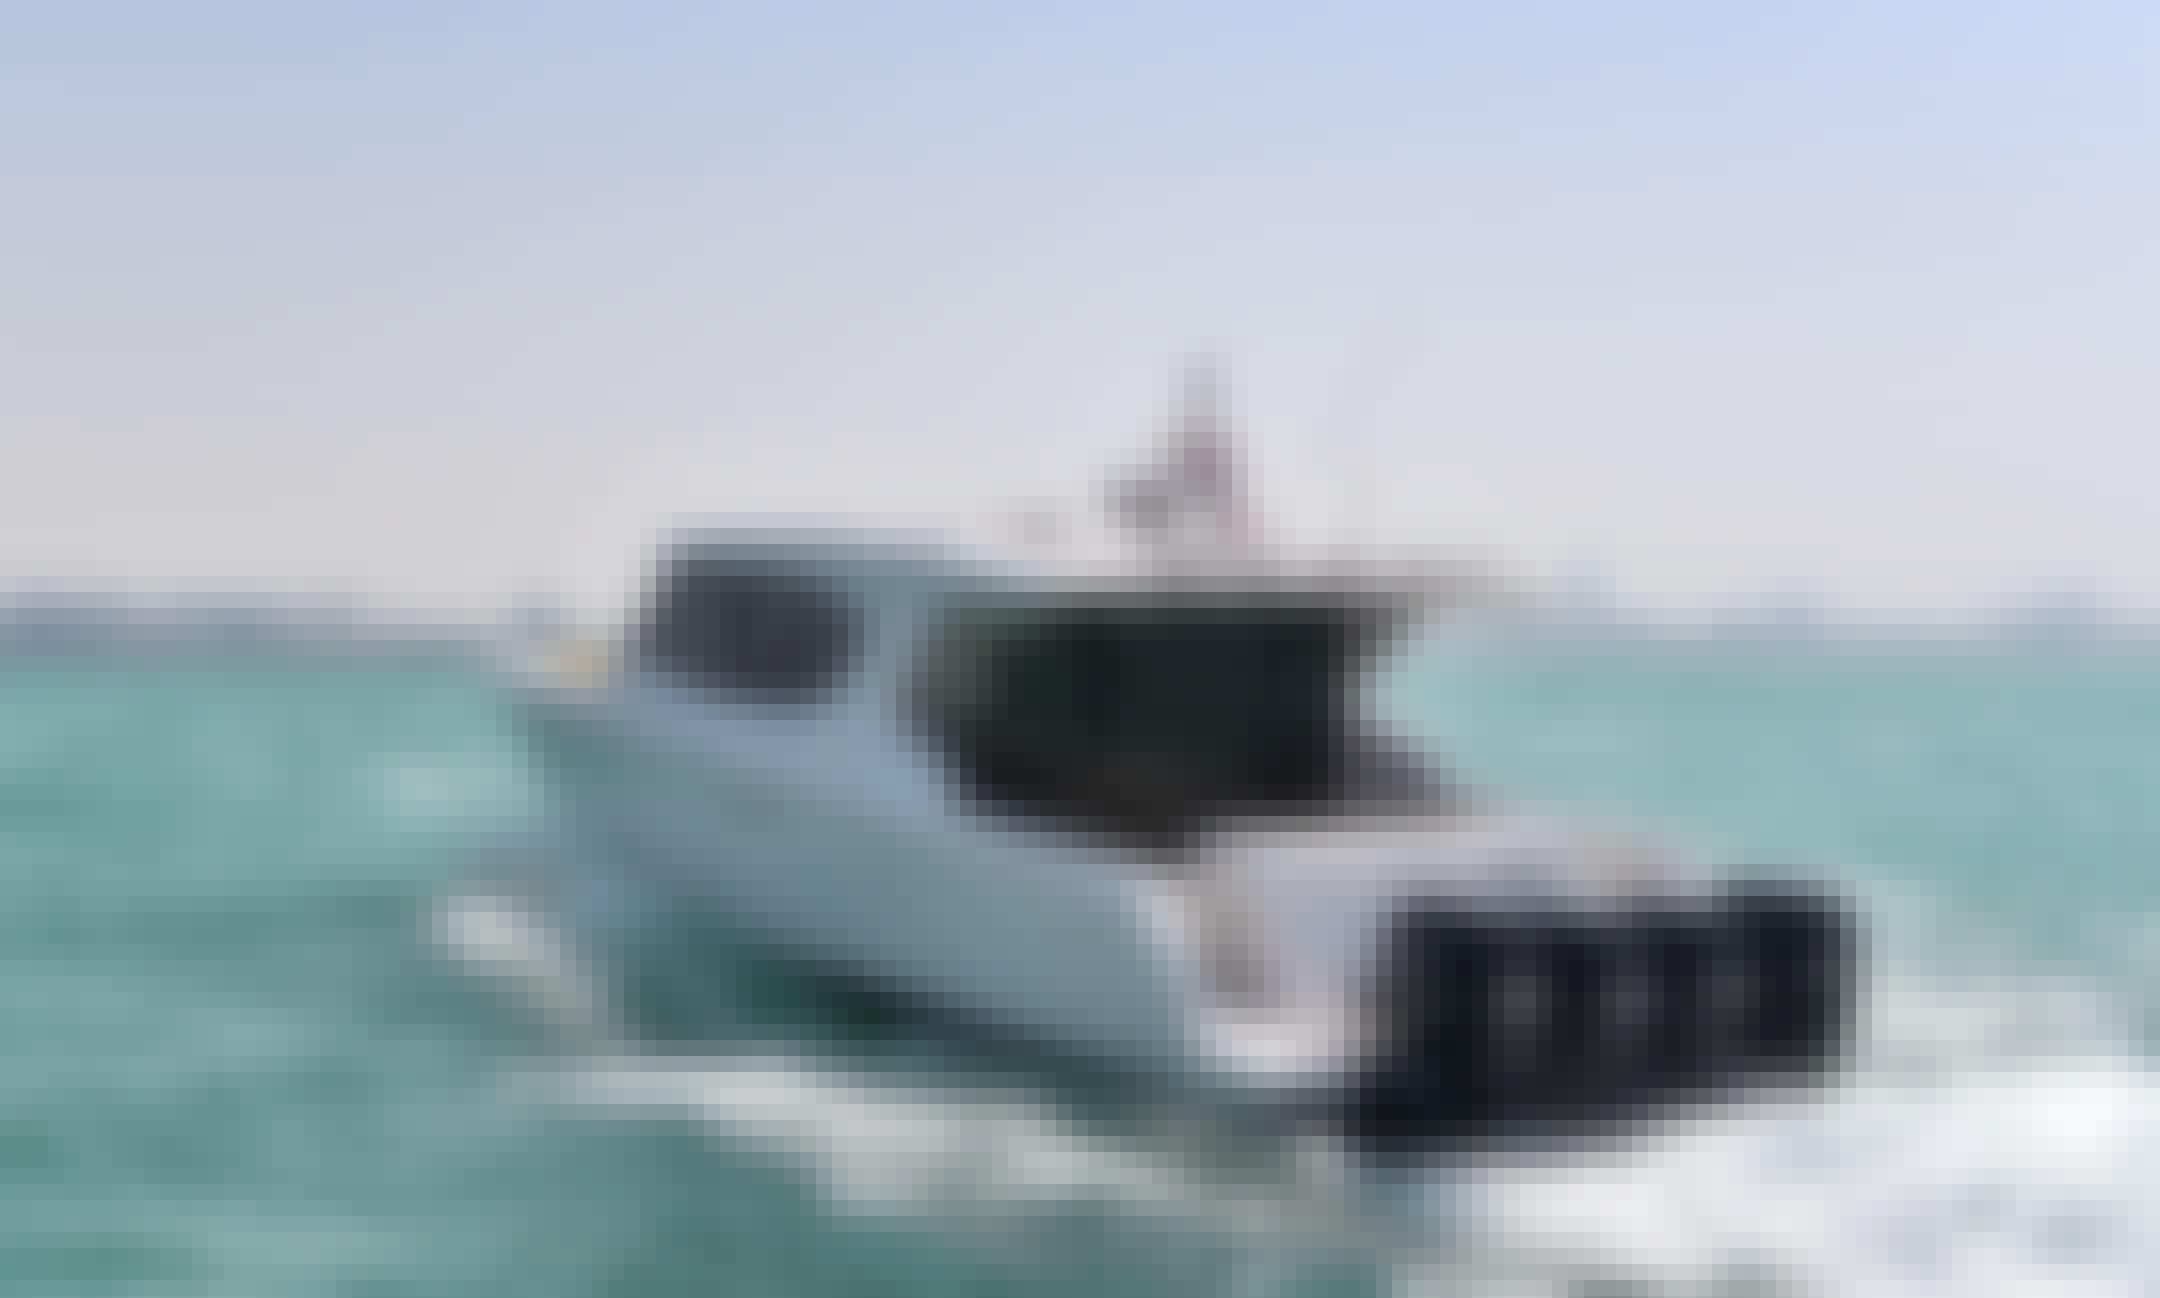 Captained Charter 47' Silver Craft Motorboat in Fujairah - Boat Tours, Fishing Trip and Party Boat for up to 12 Person!